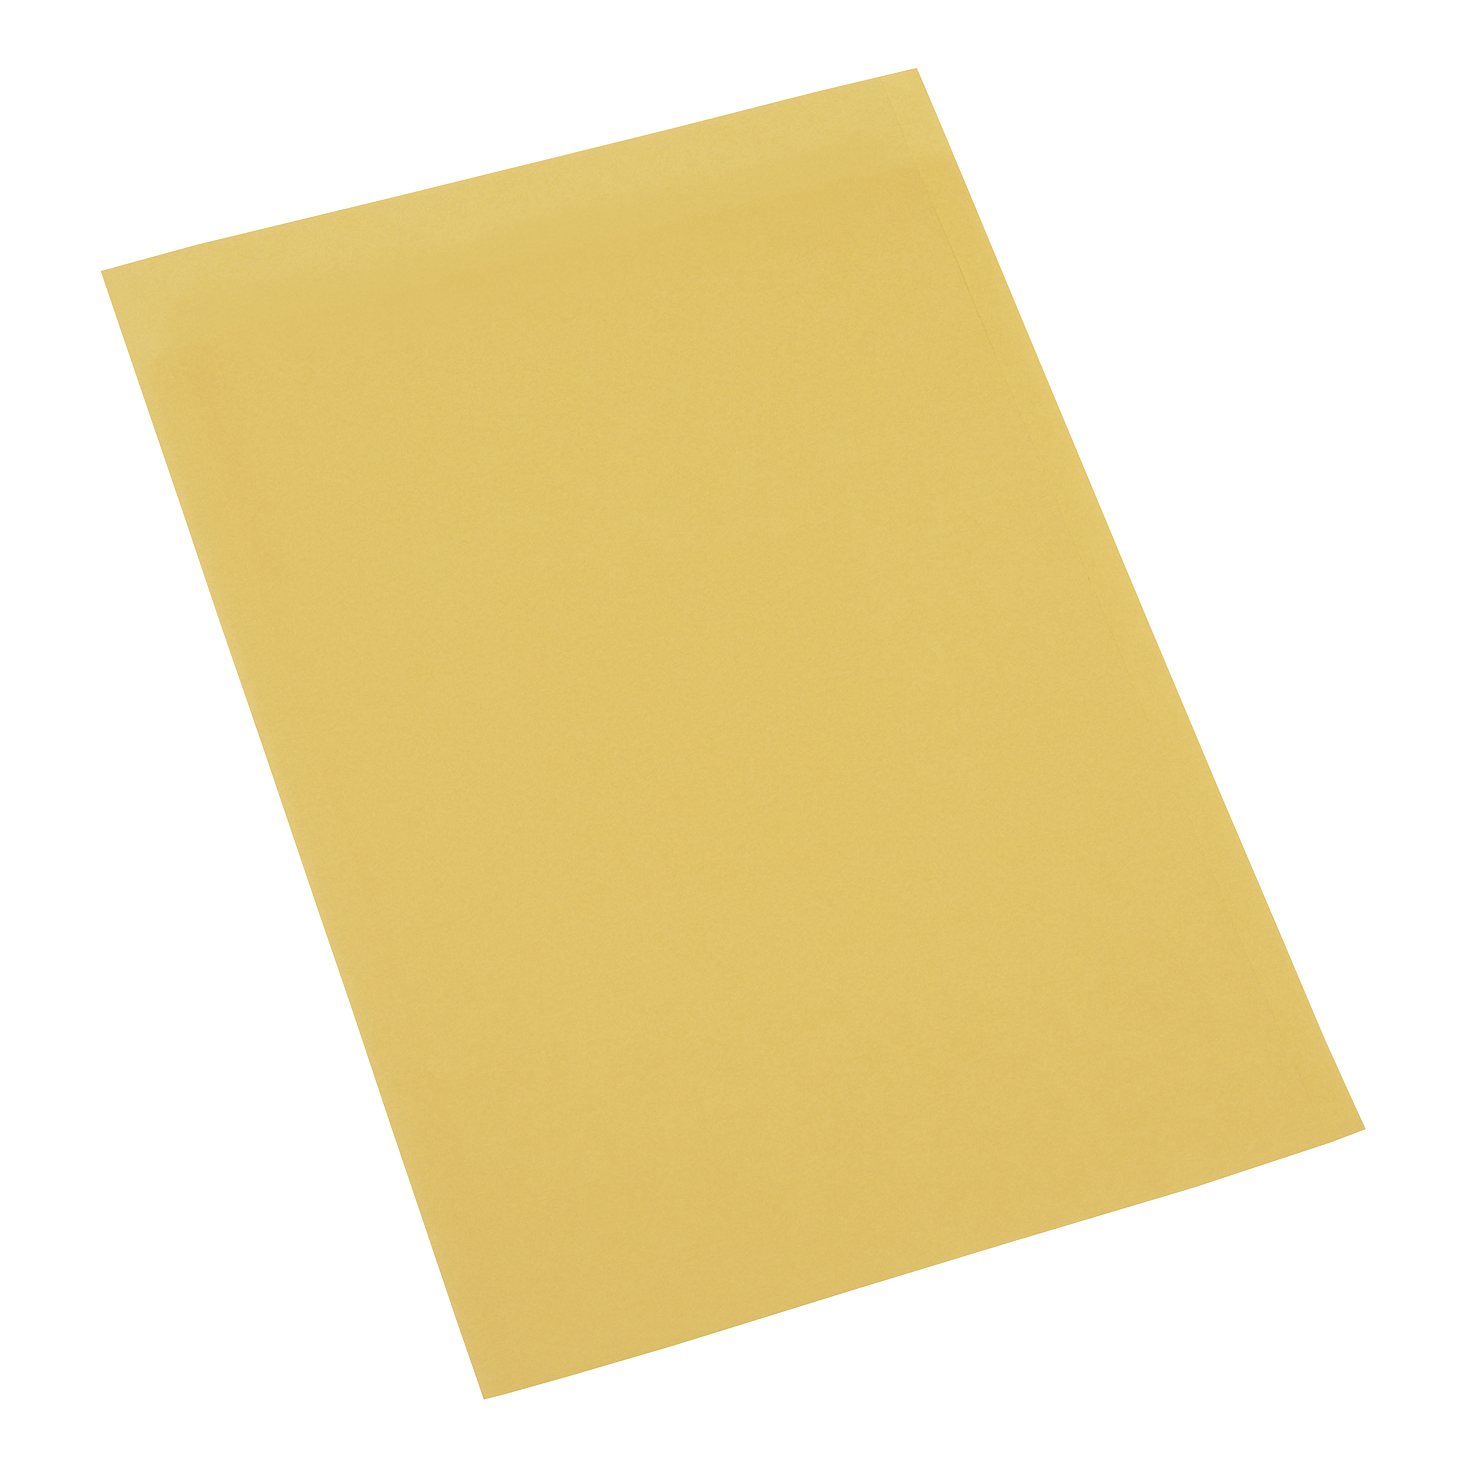 5 Star Office Square Cut Folder Recycled 180gsm Foolscap Yellow Pack 100